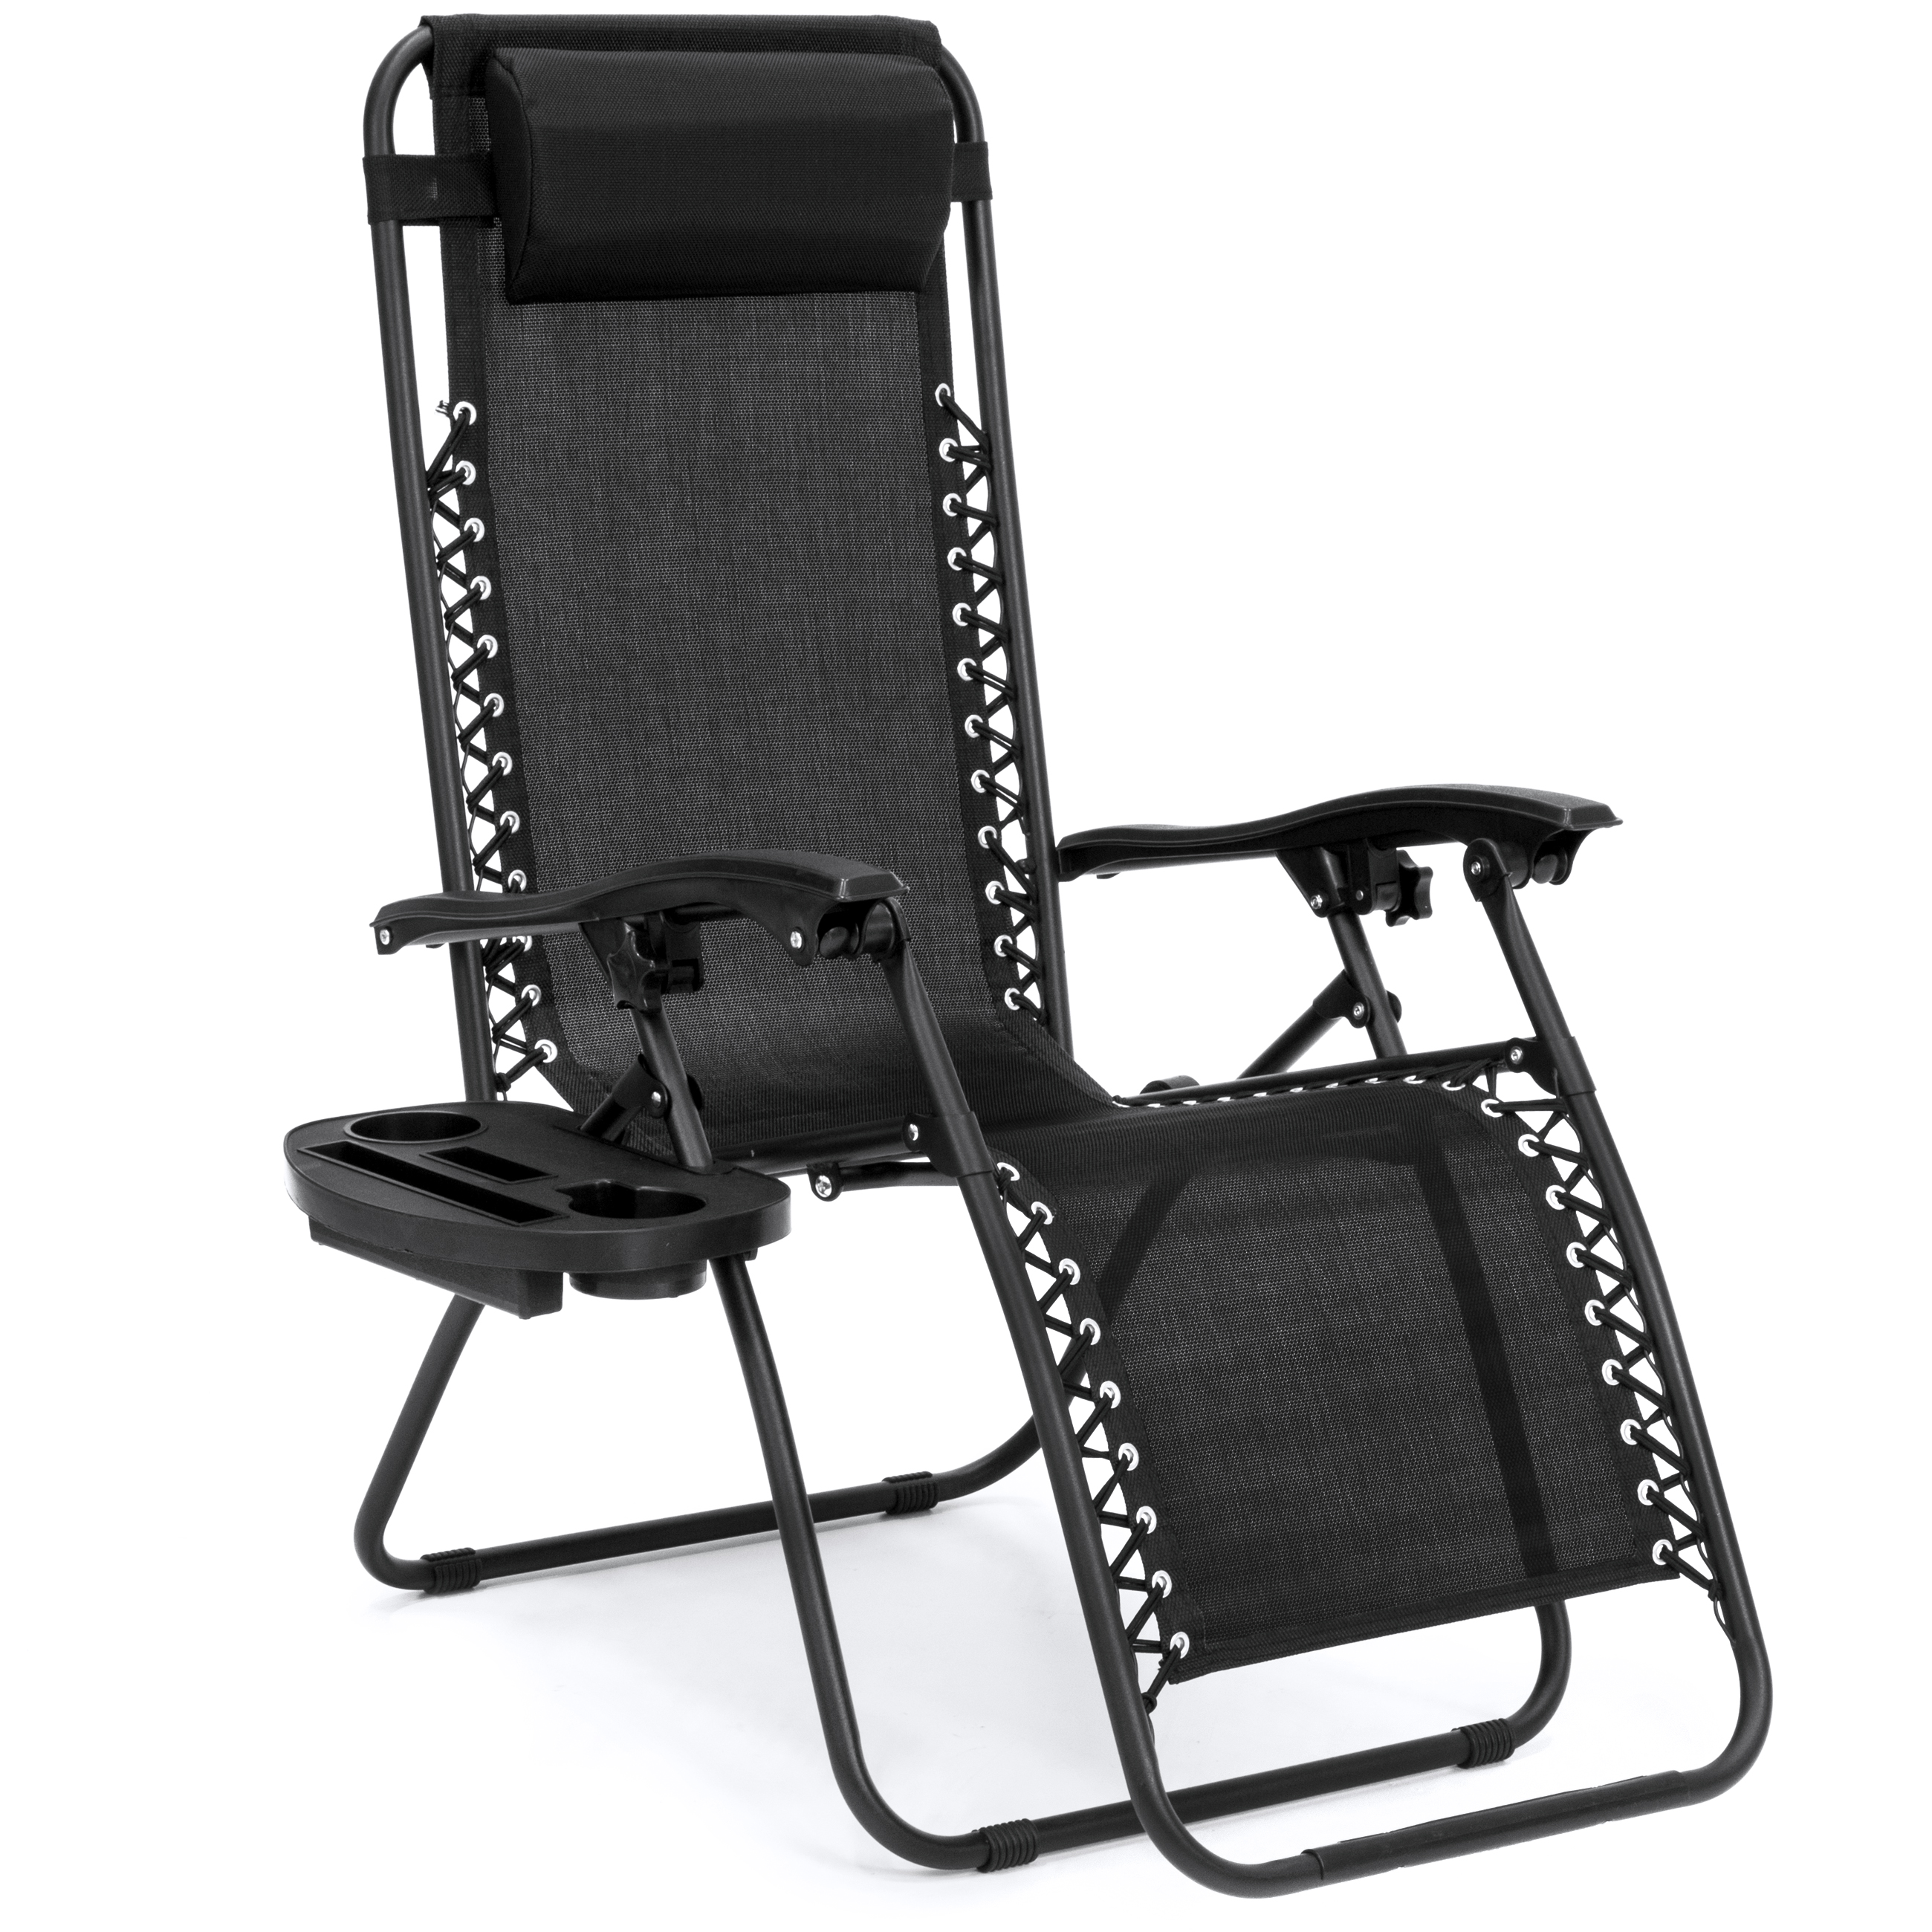 Beach Chair With Canopy And Cup Holder Bcp Set Of 2 Zero Gravity Chairs W Cup Holders Black